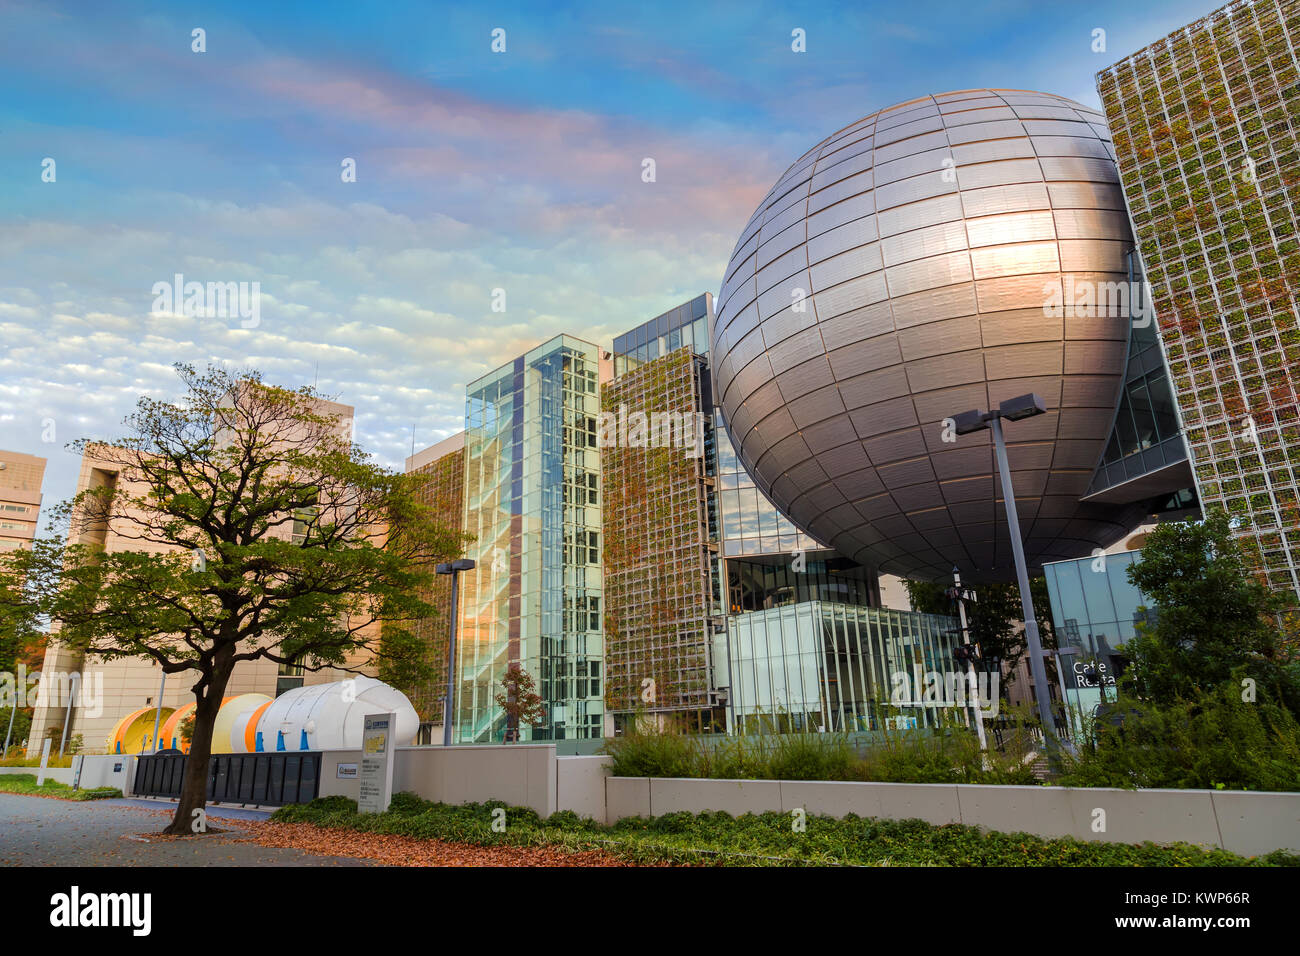 NAGOYA, JAPAN - NOVEMBER 21, 2015: Nagoya City Science Museum houses the largest planetarium in the world, it portrays Stock Photo